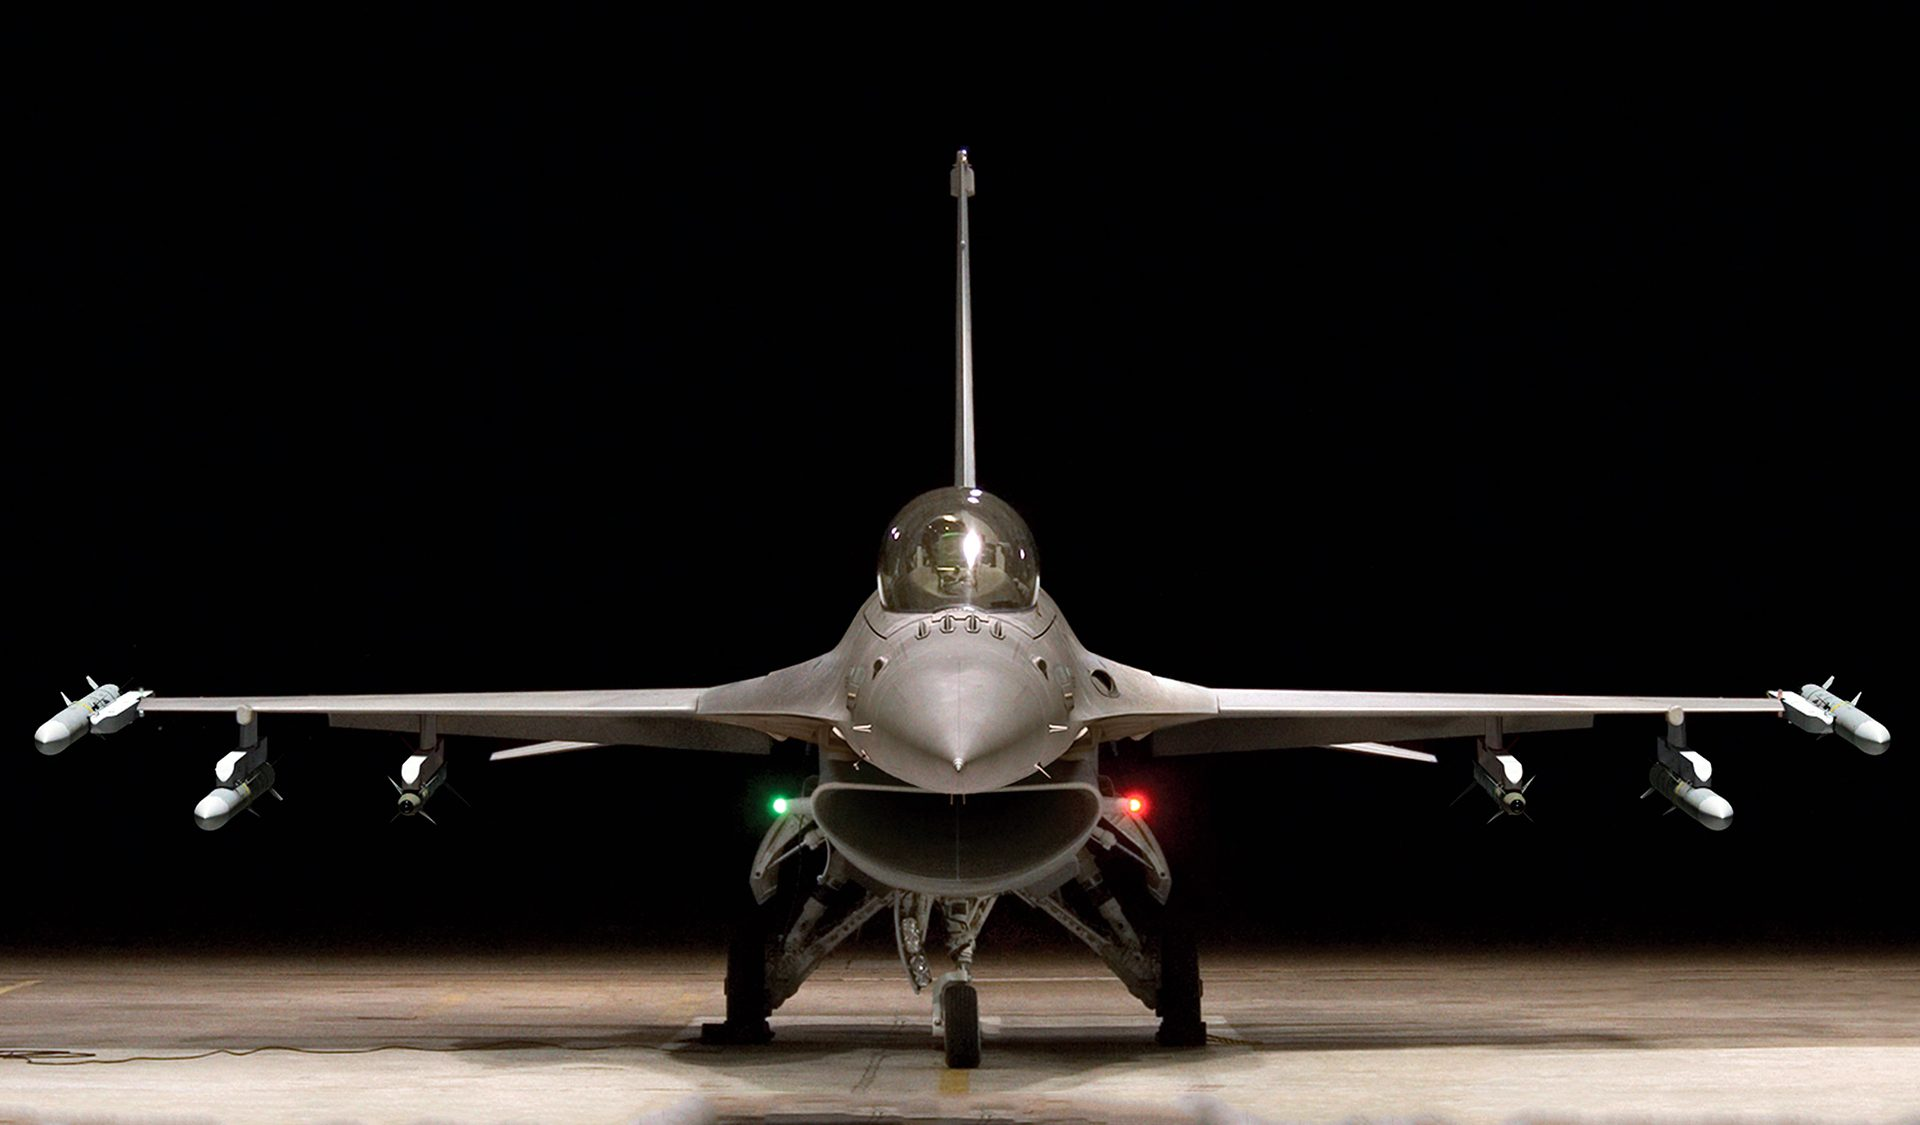 F-16-Training.jpg.pc-adaptive.1920.medium.jpeg